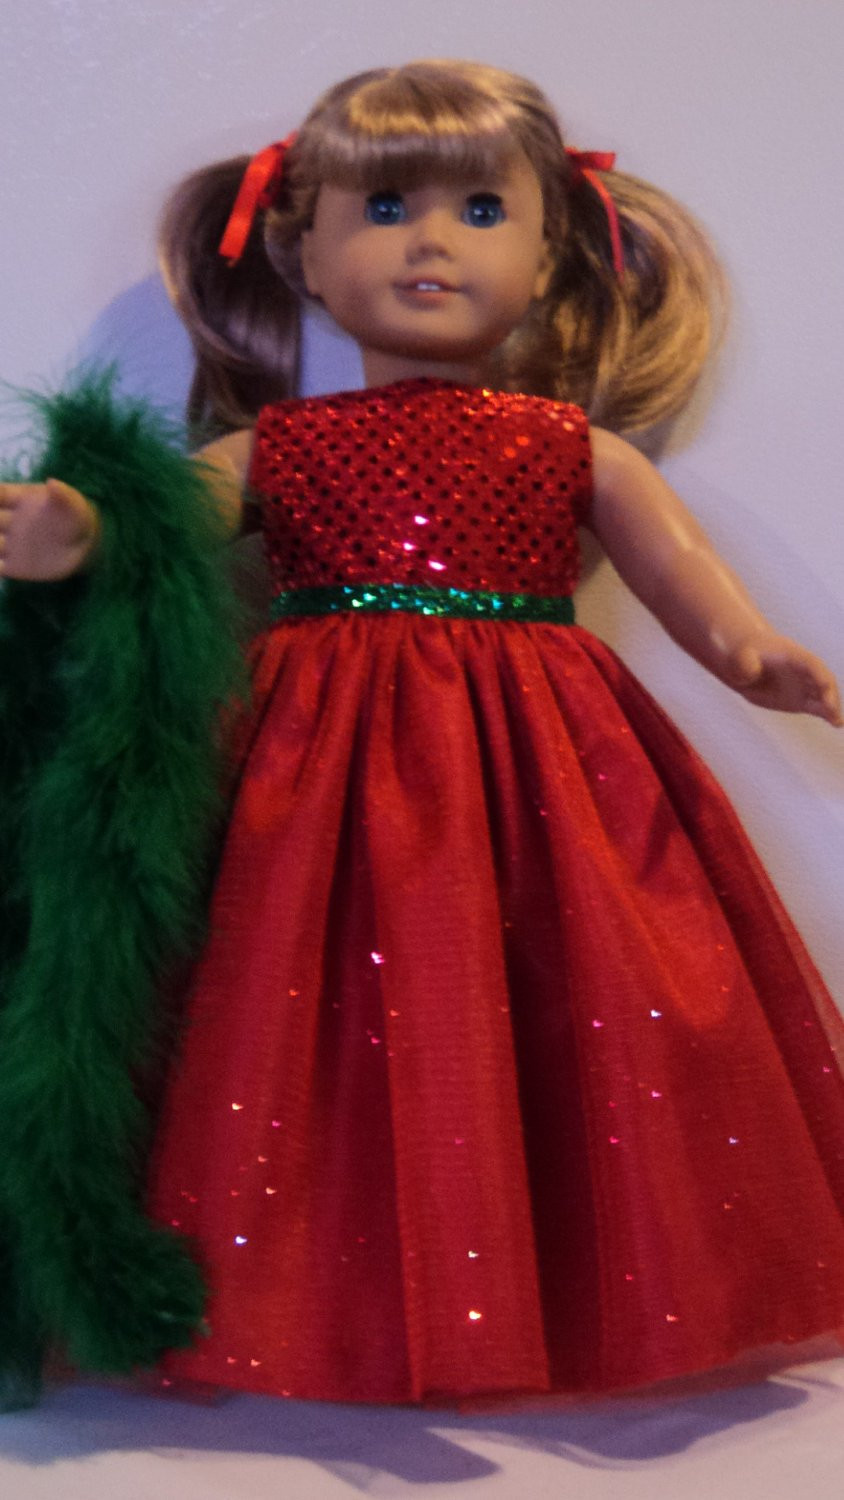 Inspirational American Girl Doll Clothes Christmas Gown & Boa American Girl Doll Christmas Outfits Of Wonderful 40 Ideas American Girl Doll Christmas Outfits